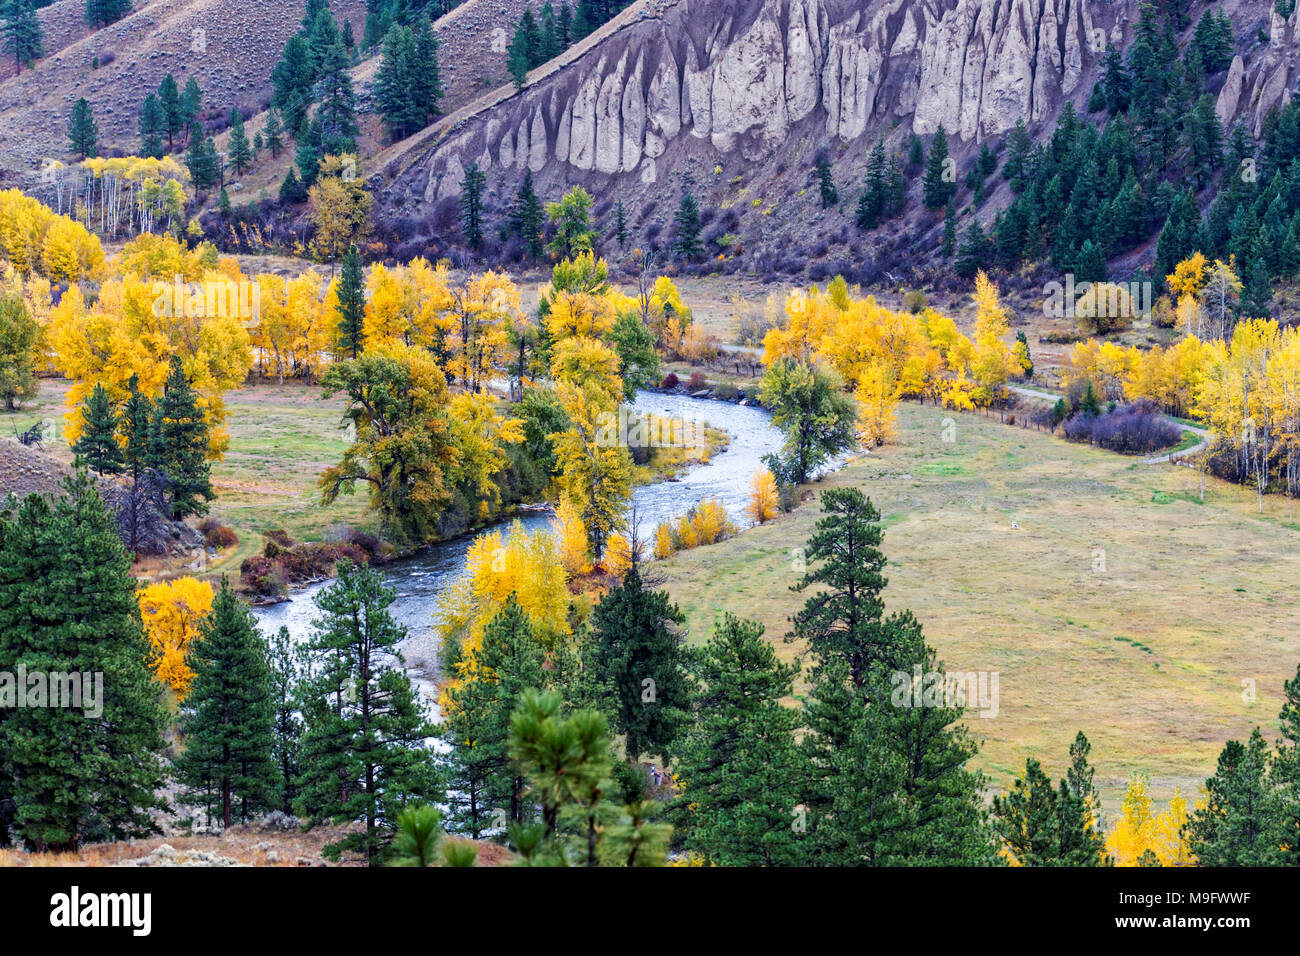 42,653.07348 landscape with twisting creek colorful valley meadow, yellow fall leaves on deciduous trees; conifers, cliff - Stock Image